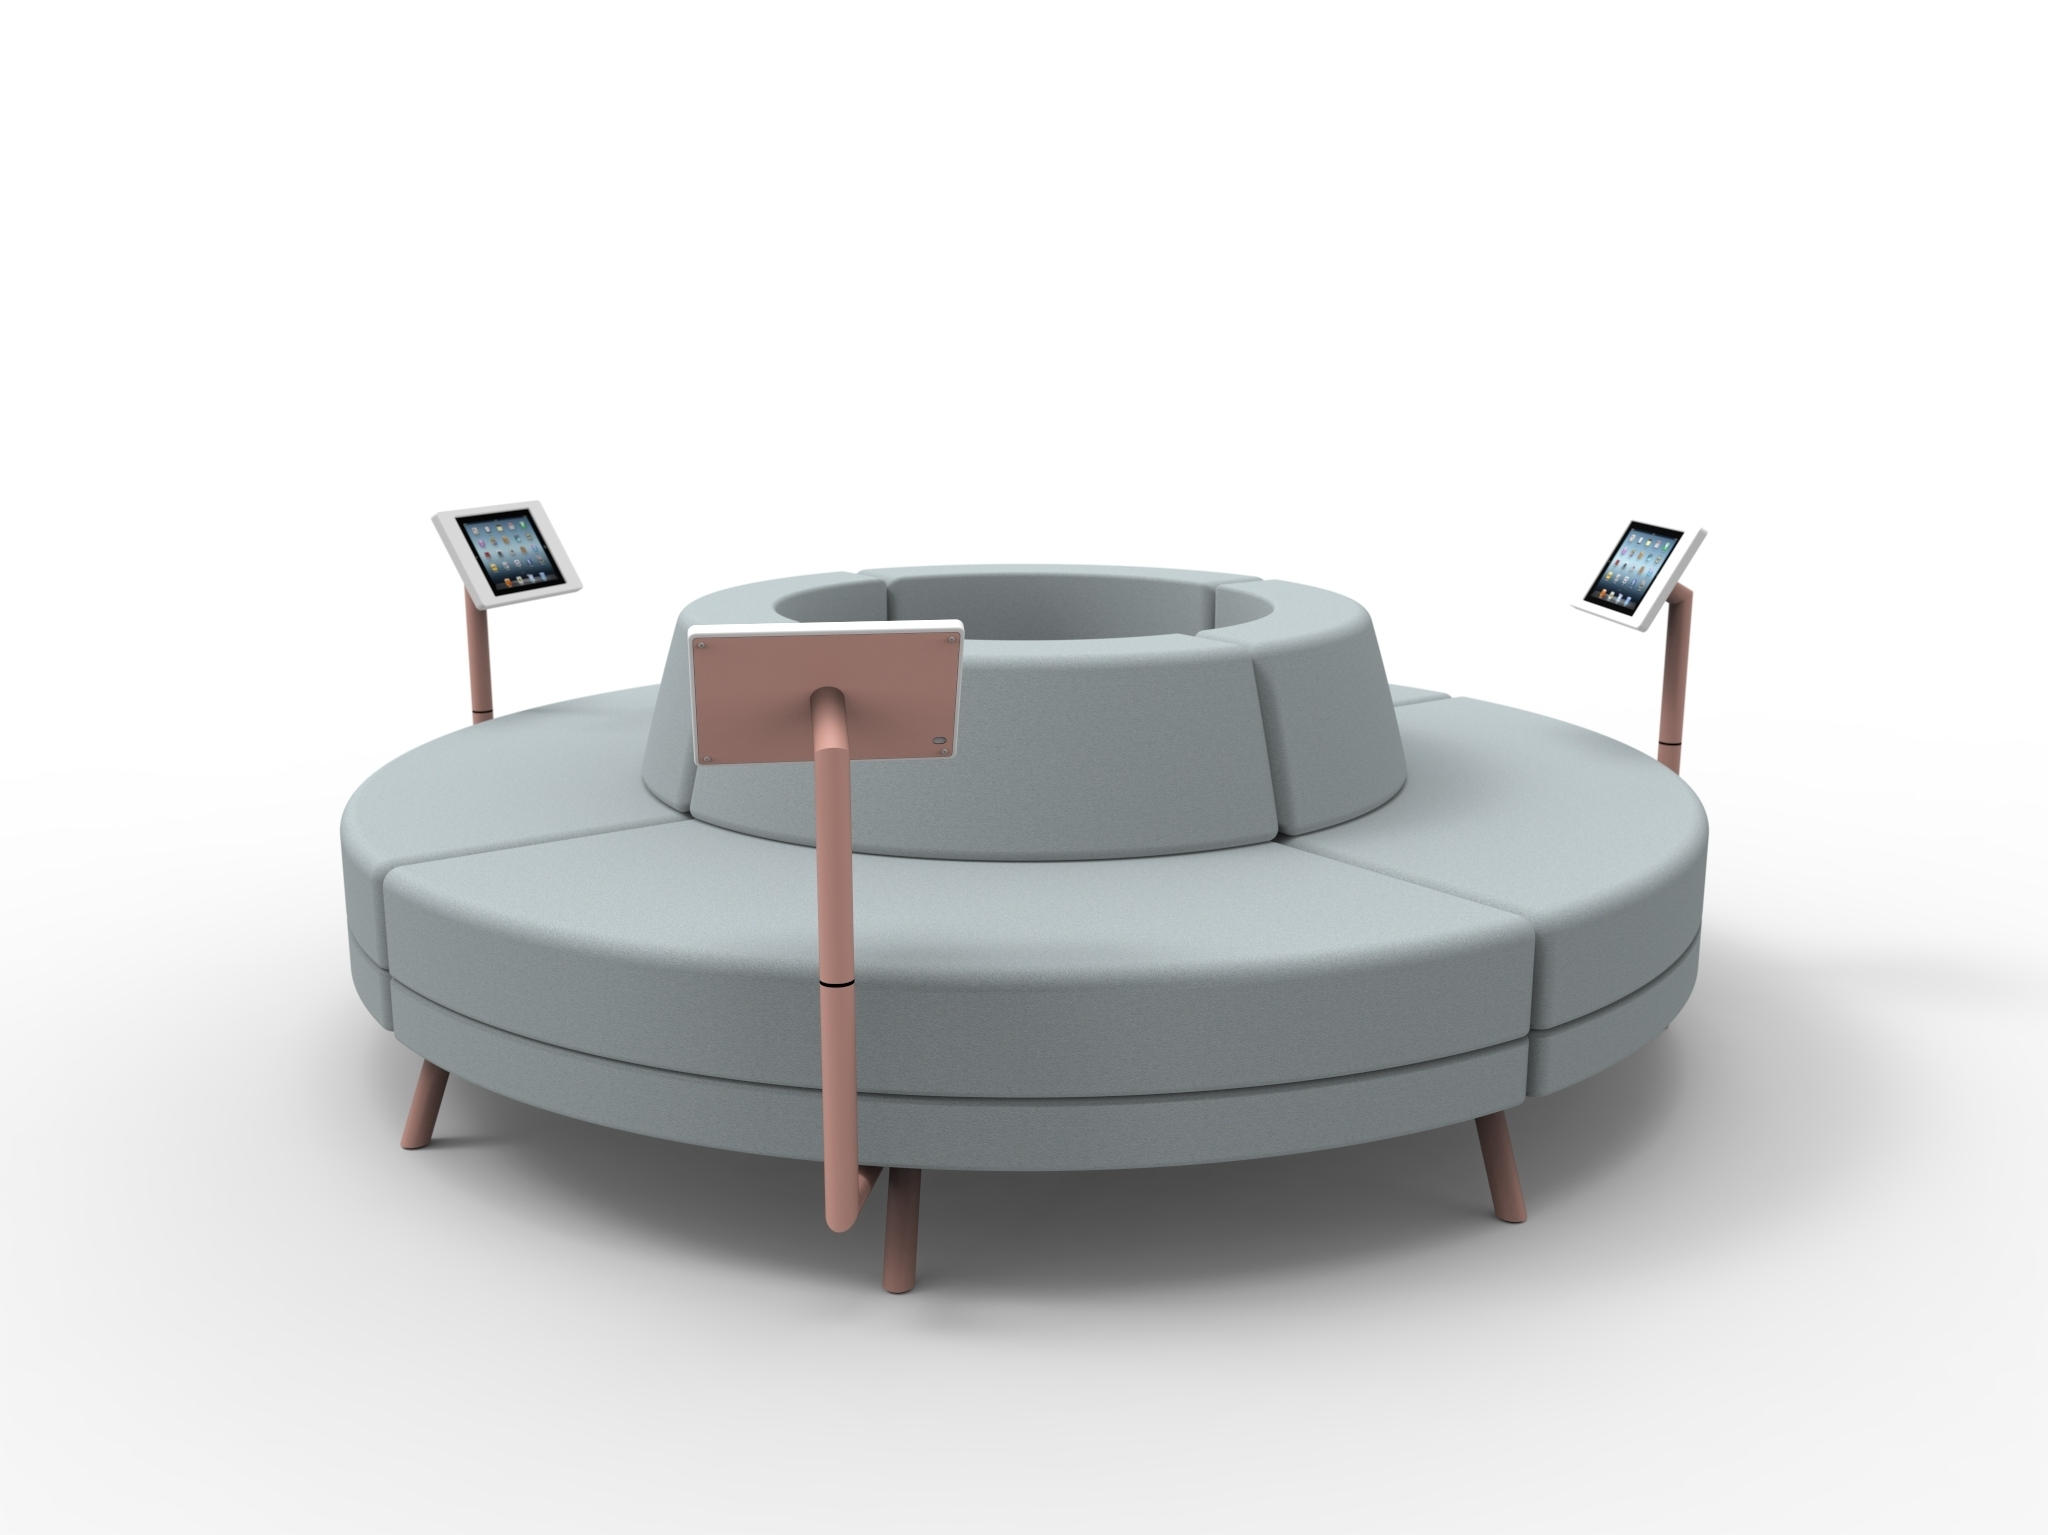 Circle Sofas Within Recent The Amazing Circular Sofa – Goodworksfurniture (View 16 of 20)